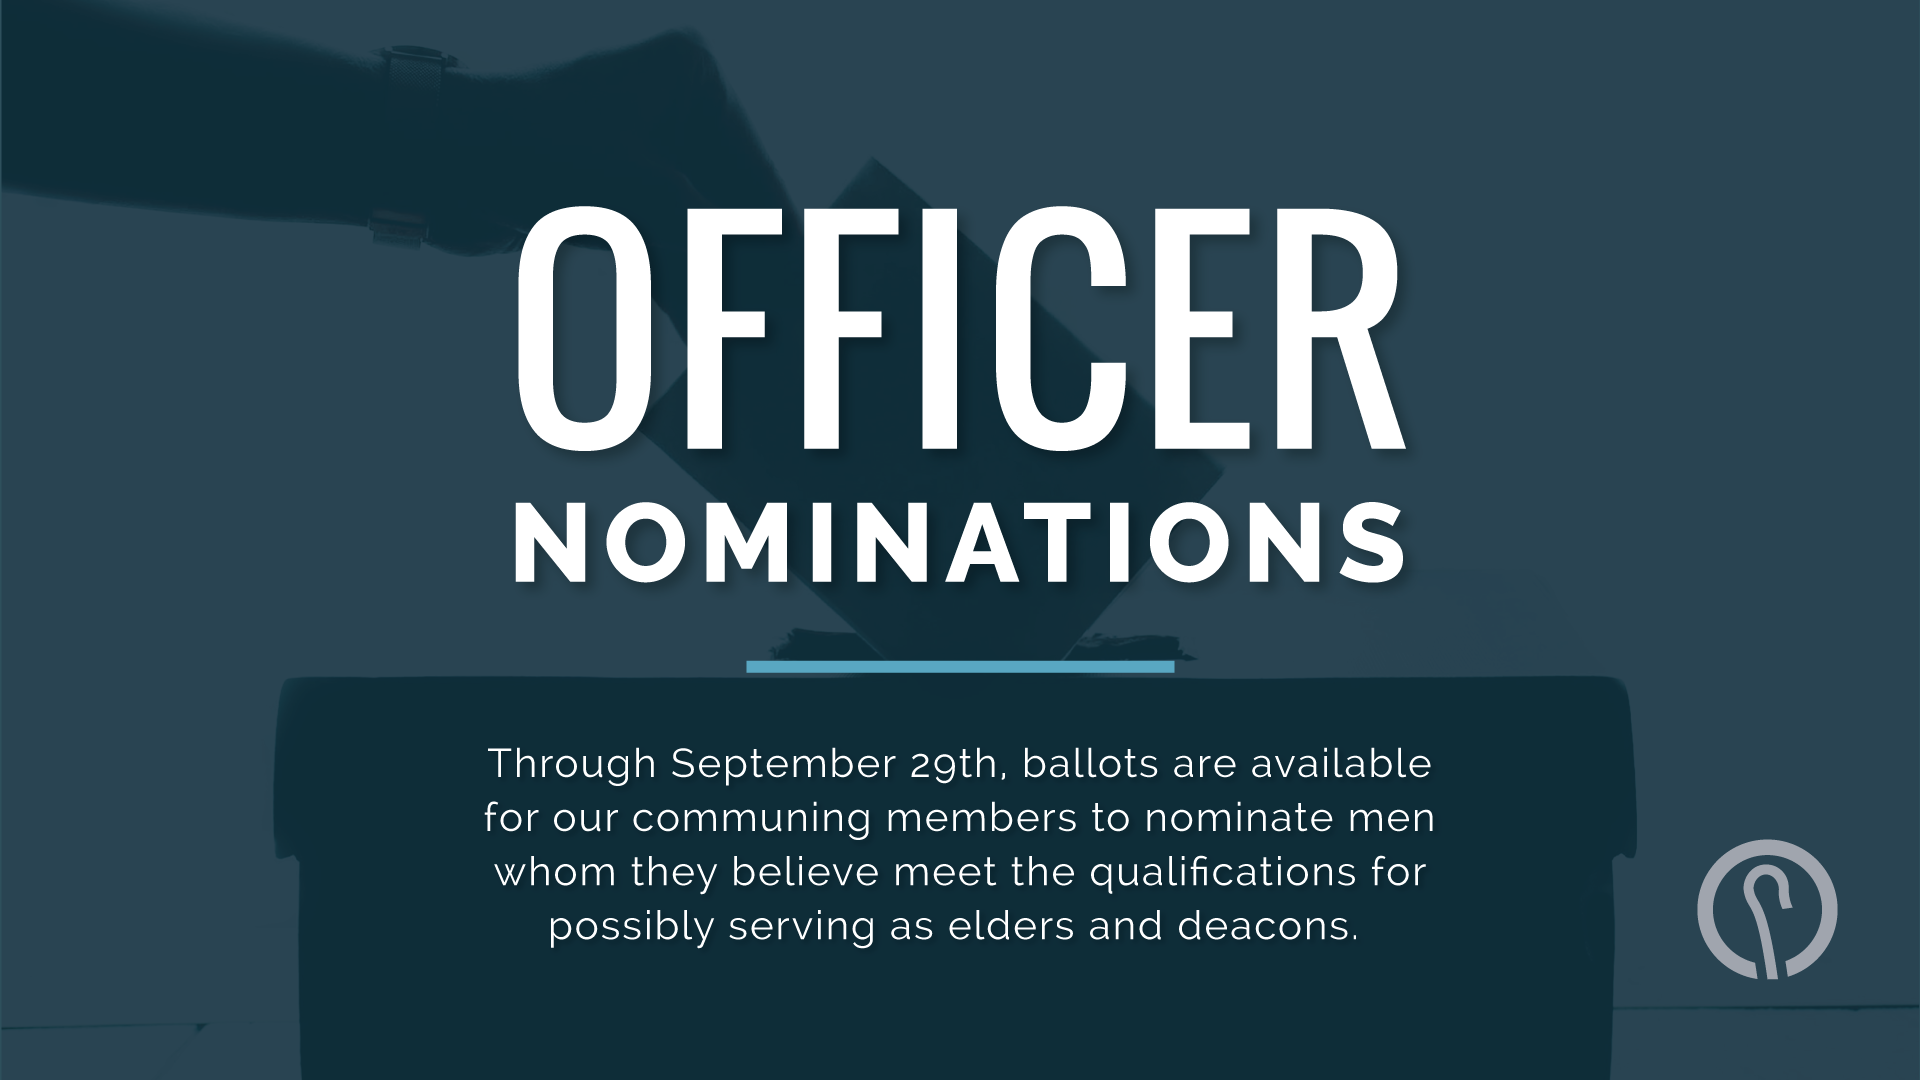 OfficerNominations.png